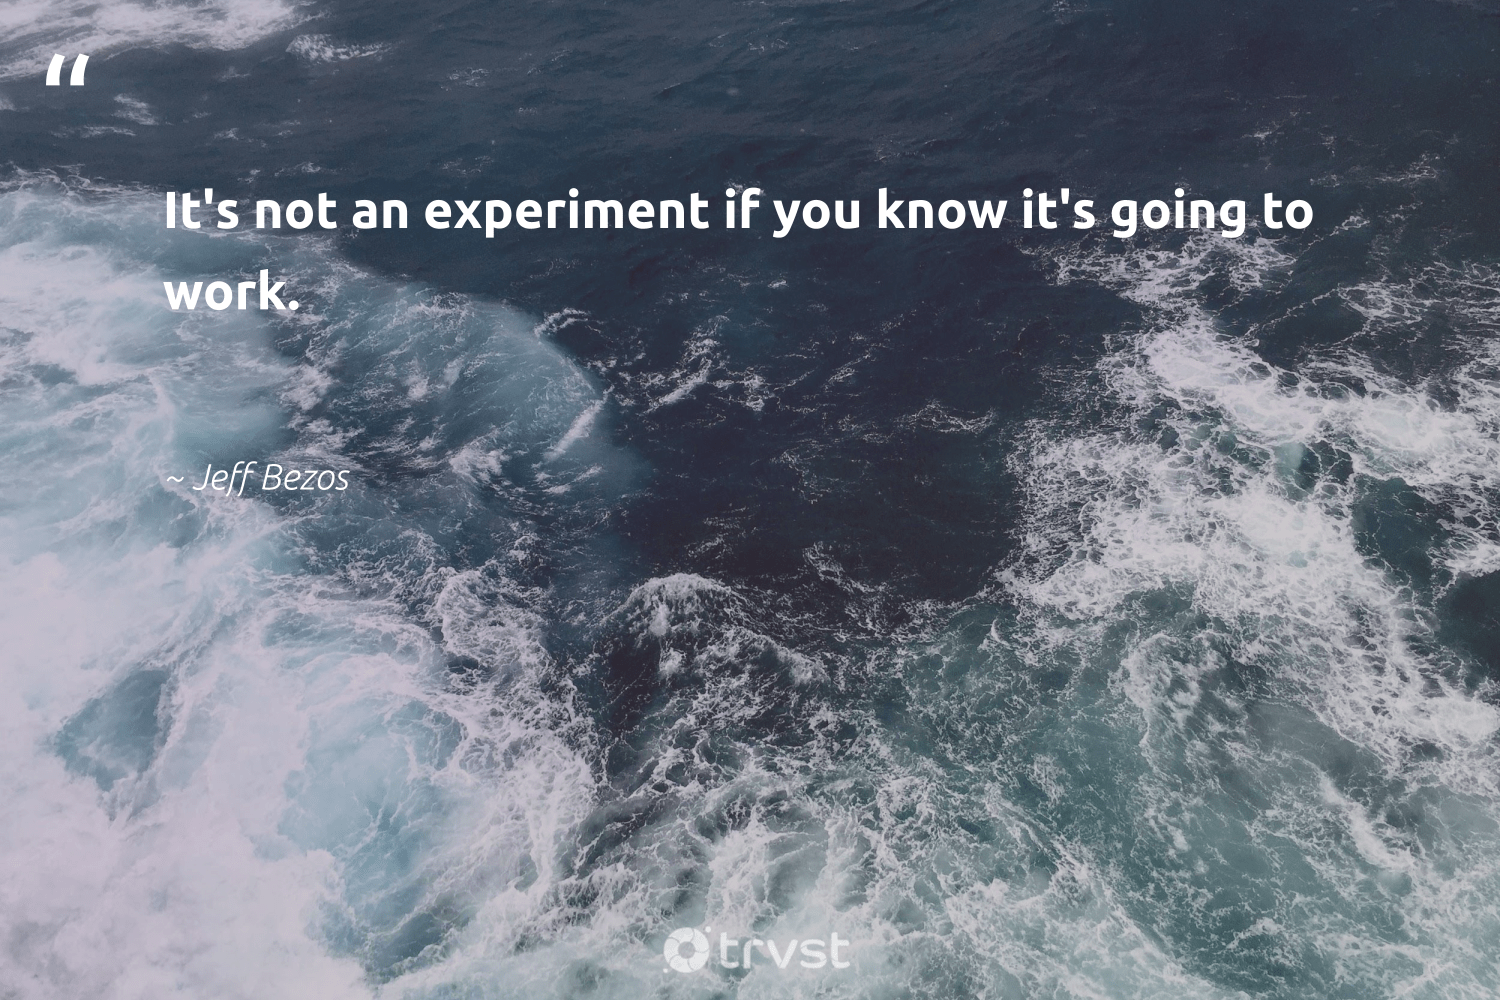 """""""It's not an experiment if you know it's going to work.""""  - Jeff Bezos #trvst #quotes #softskills #takeaction #begreat #collectiveaction #nevergiveup #dotherightthing #futureofwork #impact #dogood #socialchange"""